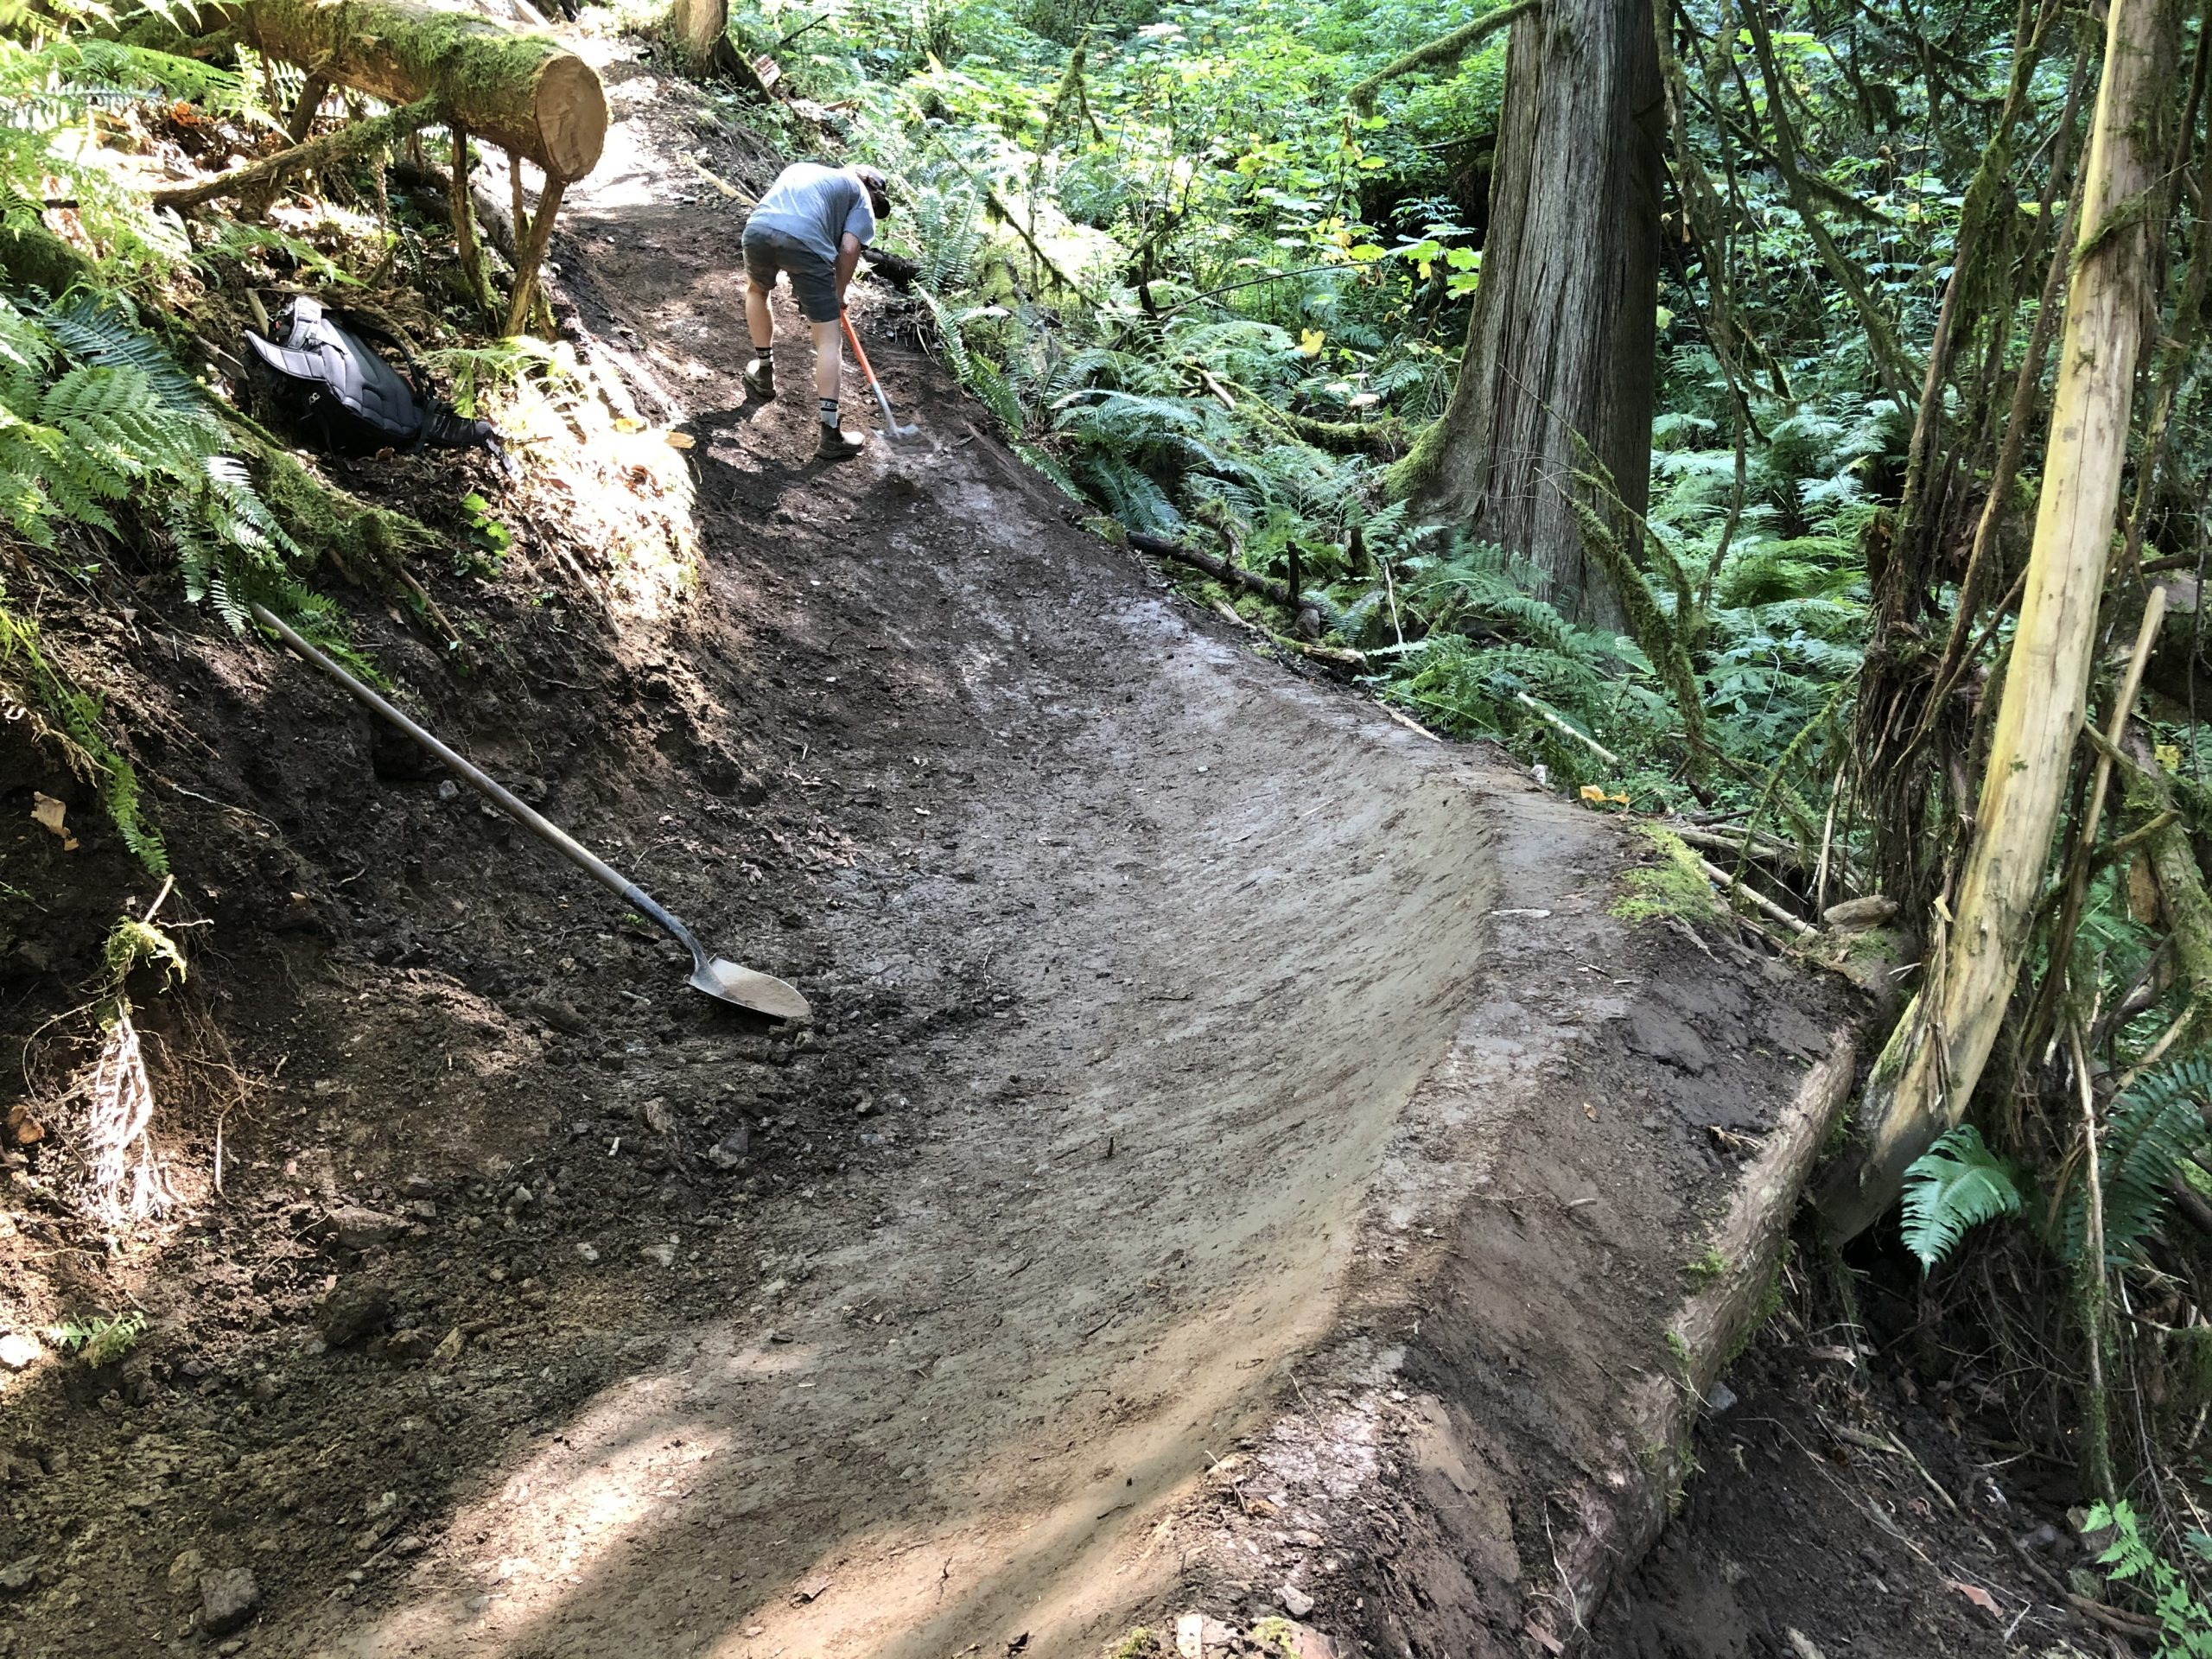 A freshly built smooth berm on a forested trail